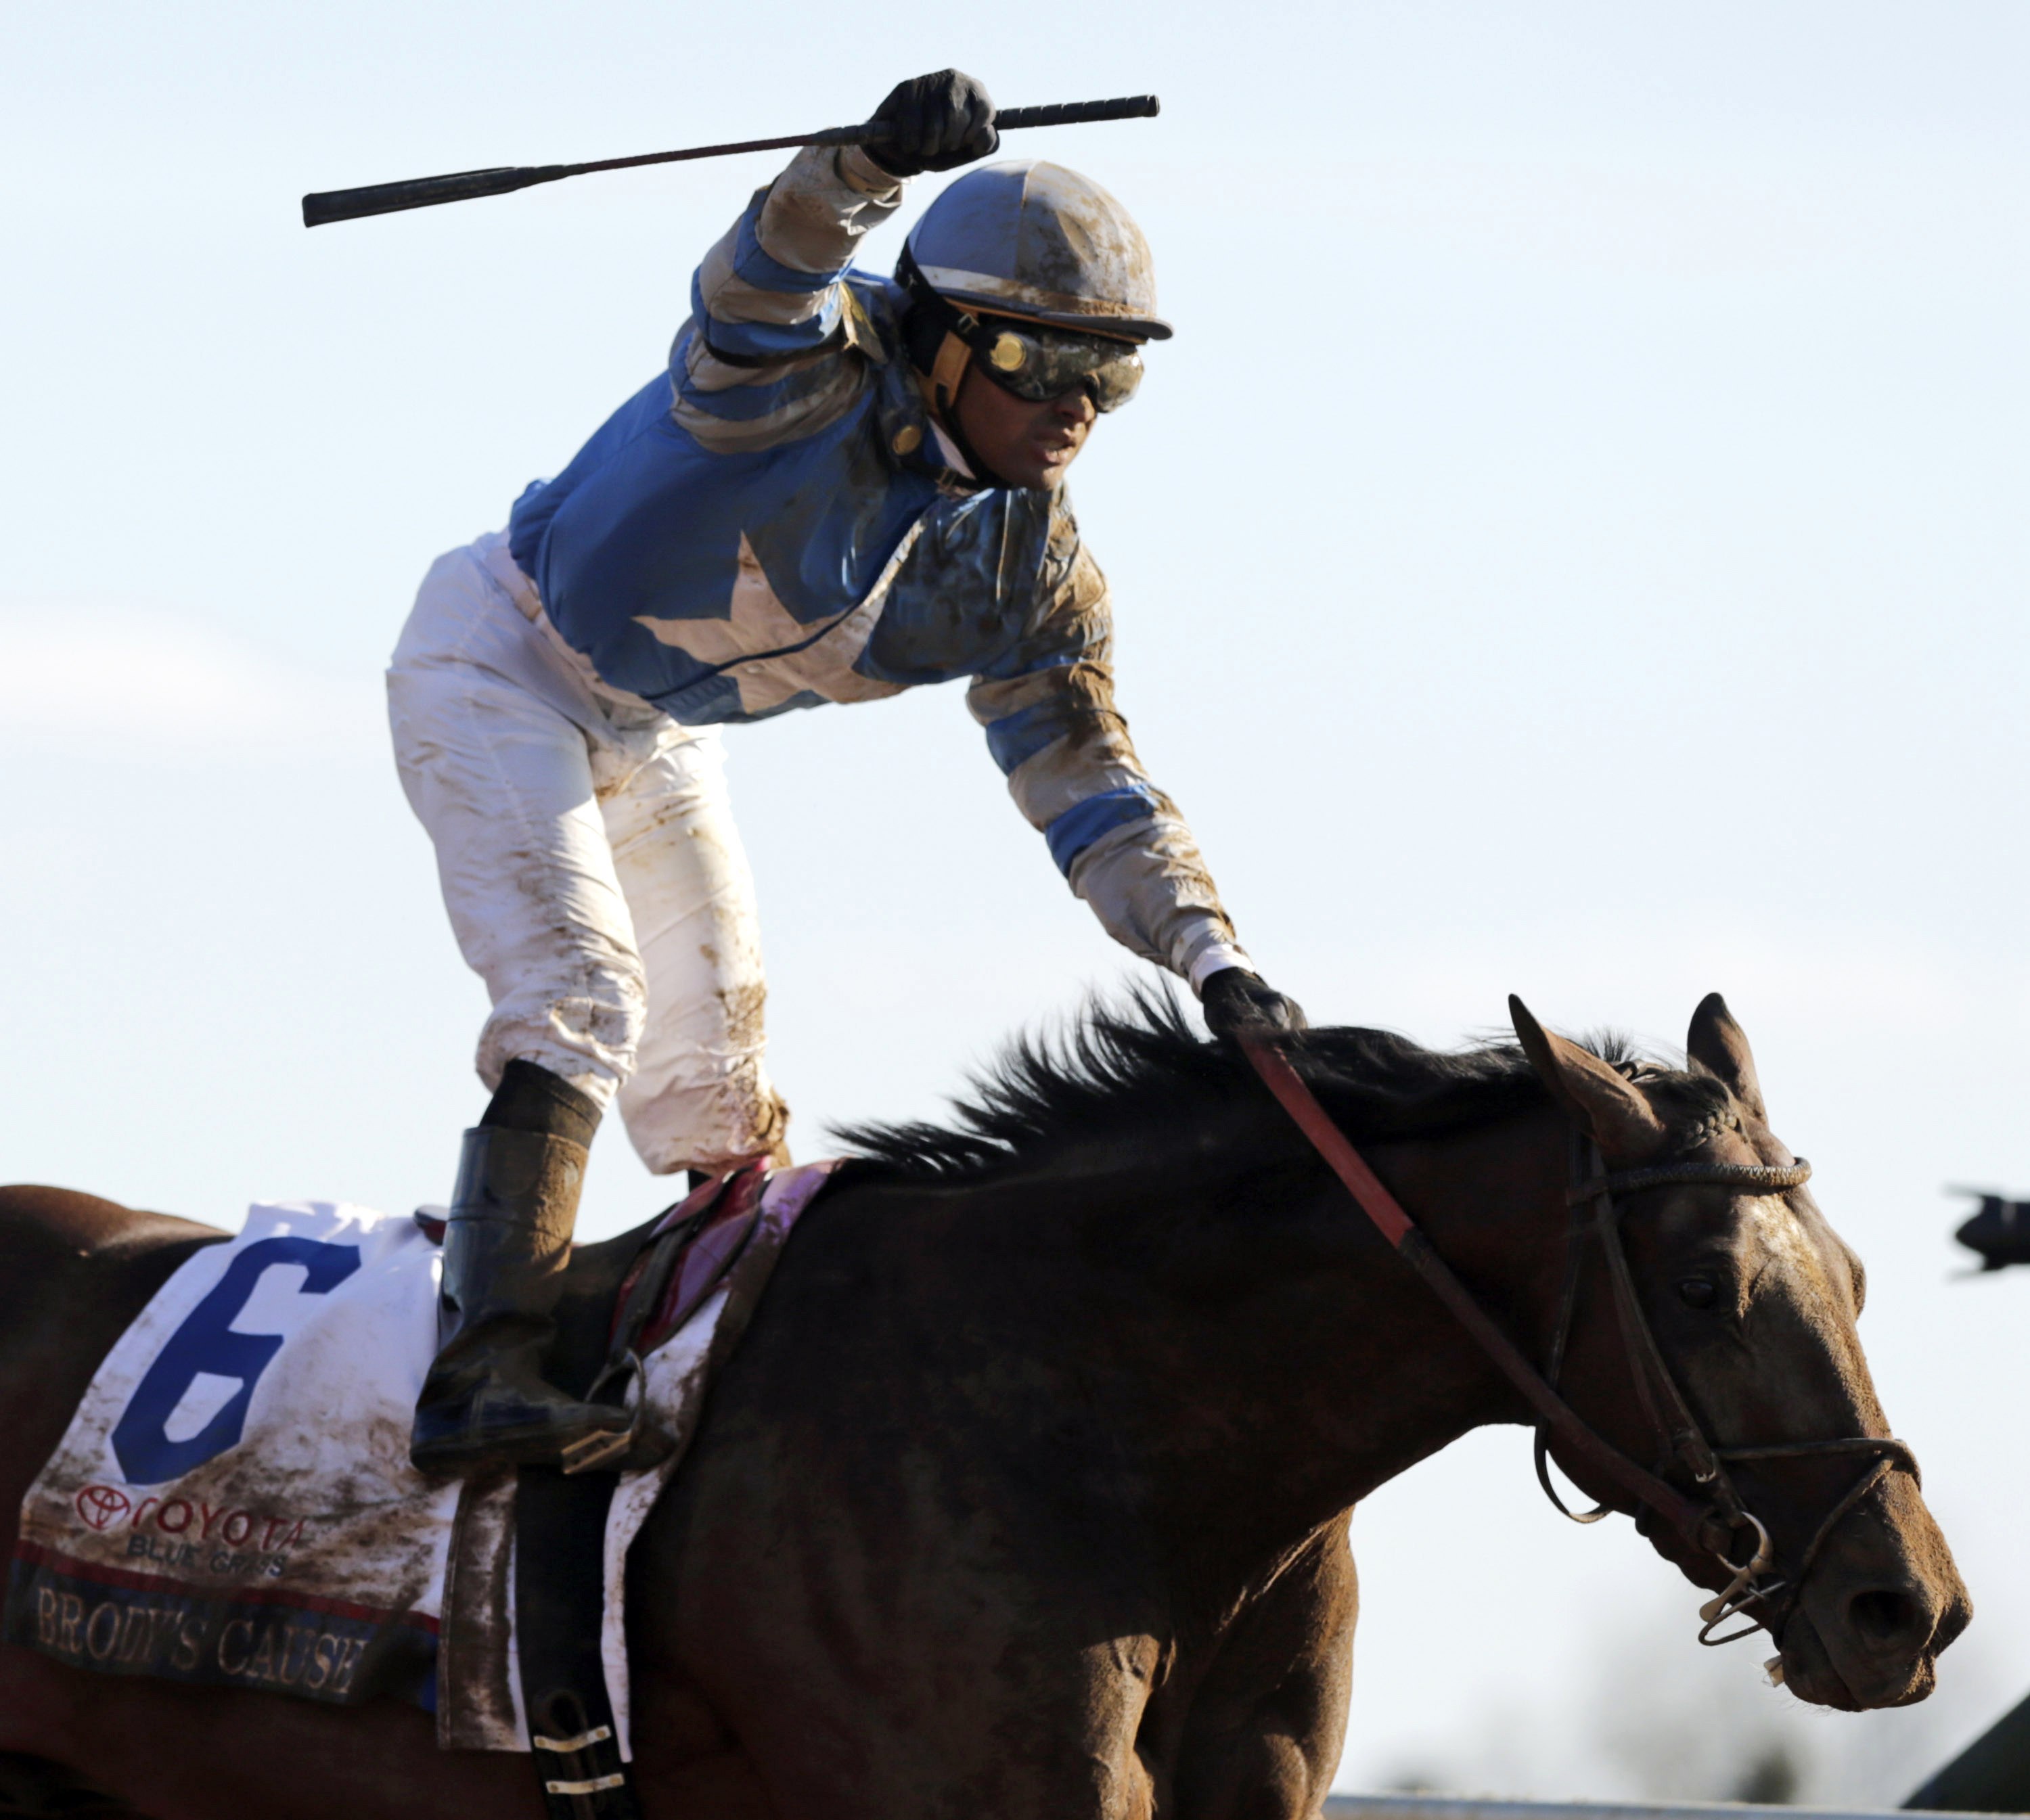 Jockey Luis Saez pumps his fist after riding Brody's Cause to win the Blue Grass Stakes horse race at Keeneland Race Course, Saturday, April 9, 2016, in Lexington, Ky (Pablo Alcala/Lexington Herald-Leader via AP) MANDATORY CREDIT